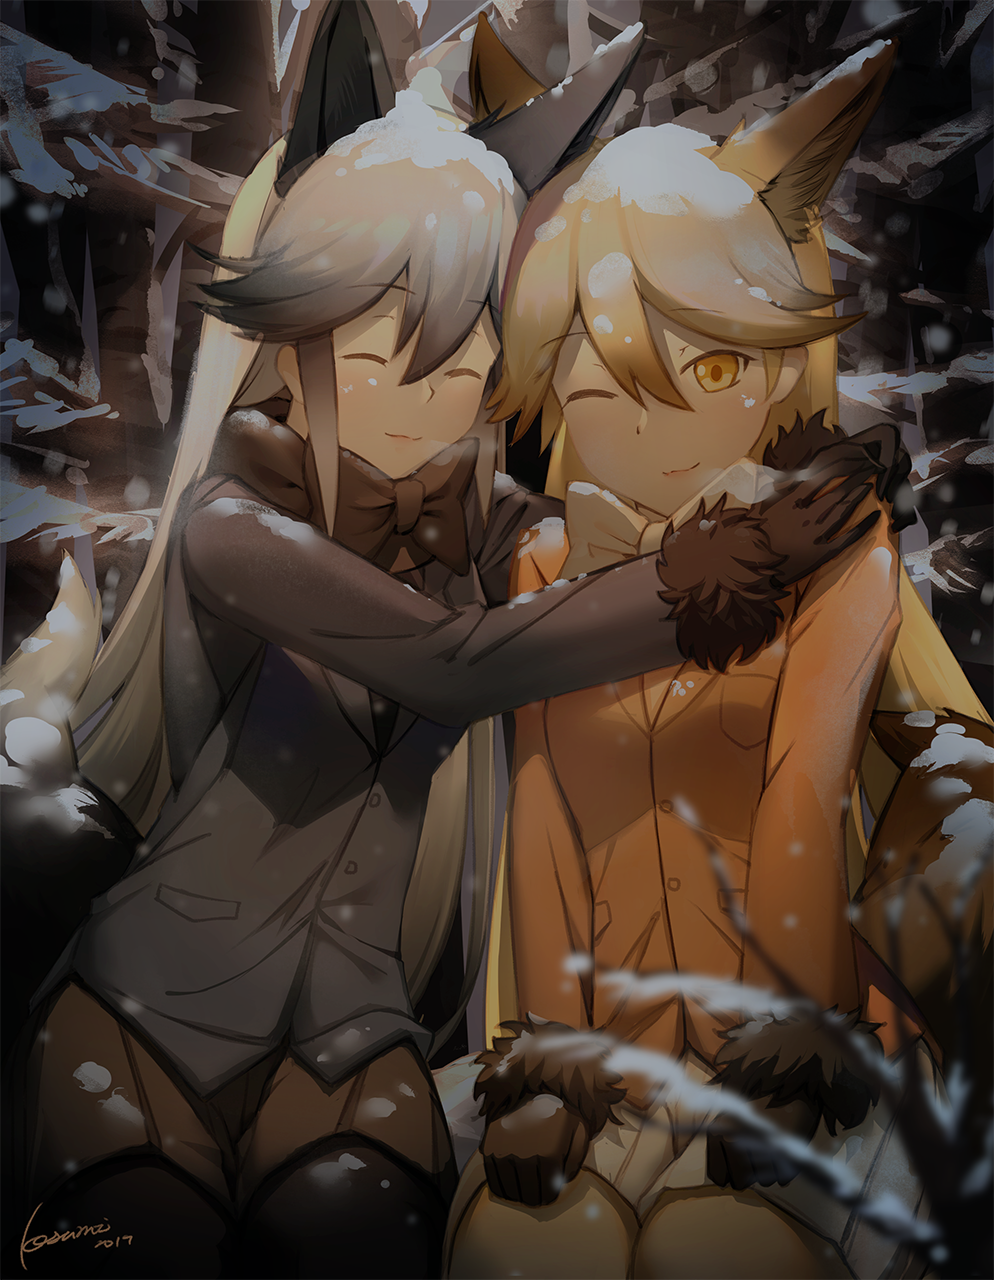 2019 2girls animal_ear_fluff animal_ears bangs black_gloves black_hair black_legwear black_neckwear blonde_hair bow bowtie breath brown_legwear brown_skirt closed_mouth commentary_request eyebrows_visible_through_hair ezo_red_fox_(kemono_friends) fox_ears fox_girl fox_tail fur-trimmed_sleeves fur_trim gloves gradient_hair grey_hair grey_jacket hair_between_eyes highres jacket kemono_friends kosumi long_hair long_sleeves multicolored_hair multiple_girls one_eye_closed orange_jacket pantyhose pleated_skirt signature silver_fox_(kemono_friends) skirt smile snow snow_on_head tail very_long_hair white_neckwear white_skirt